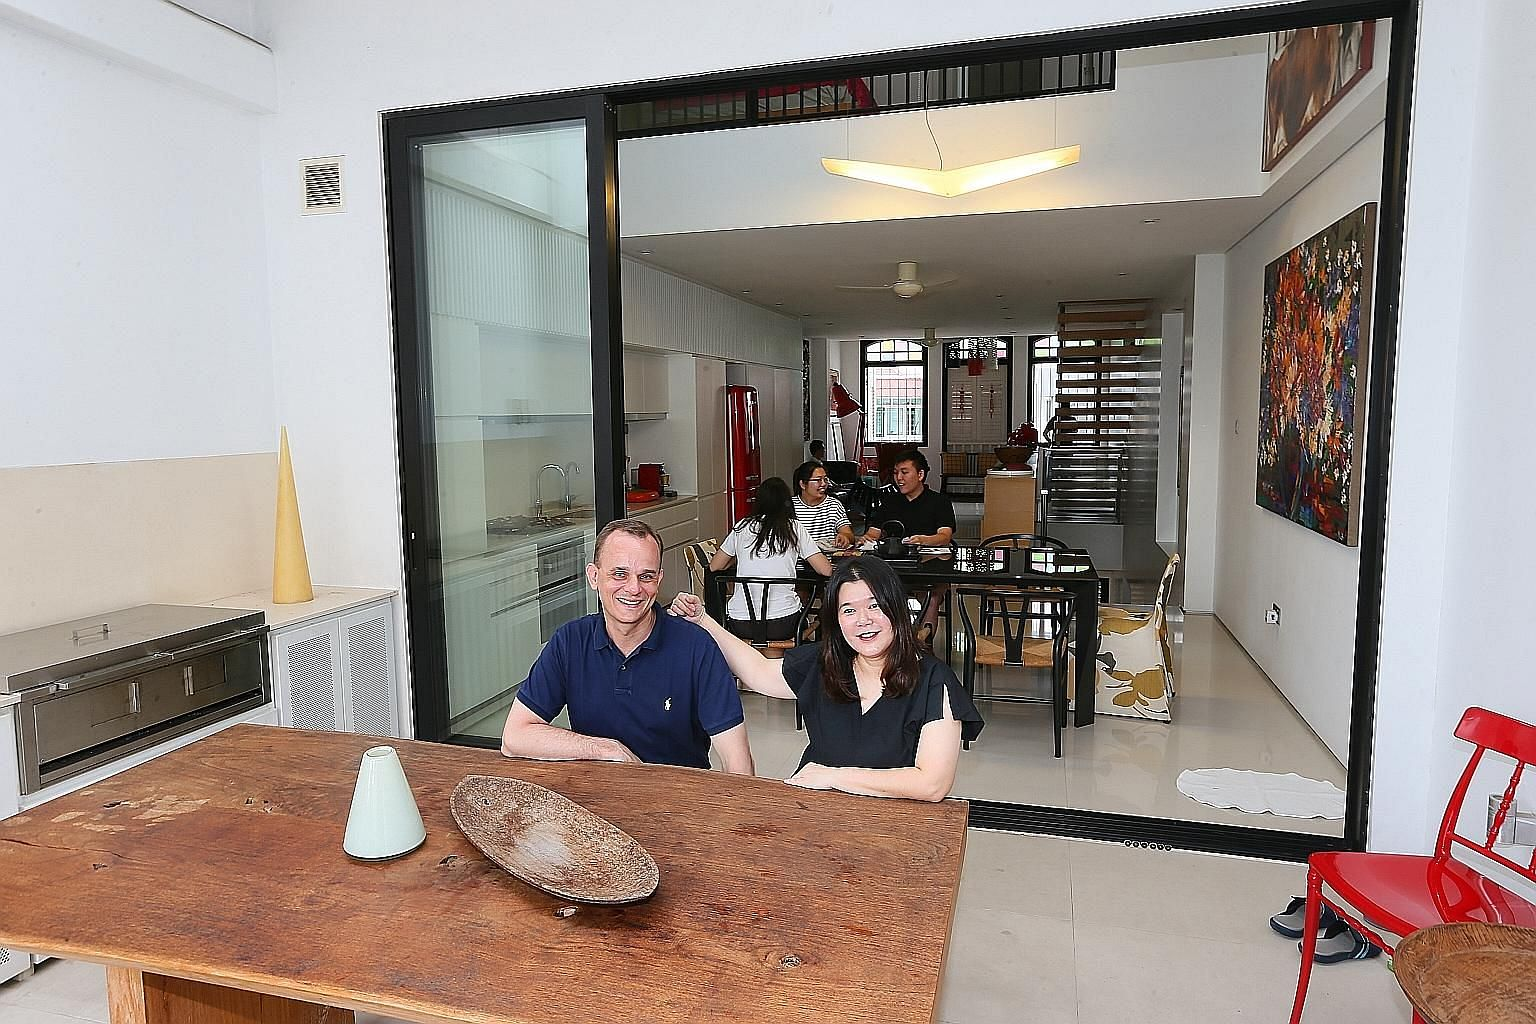 The National Library Building in Victoria Street, which won BCA's Green Mark Platinum Award in 2005, has features such as a gigantic air well in the middle that reduce the energy needed to cool the building. Ms Canny Teo and her husband, Mr Rick Reid